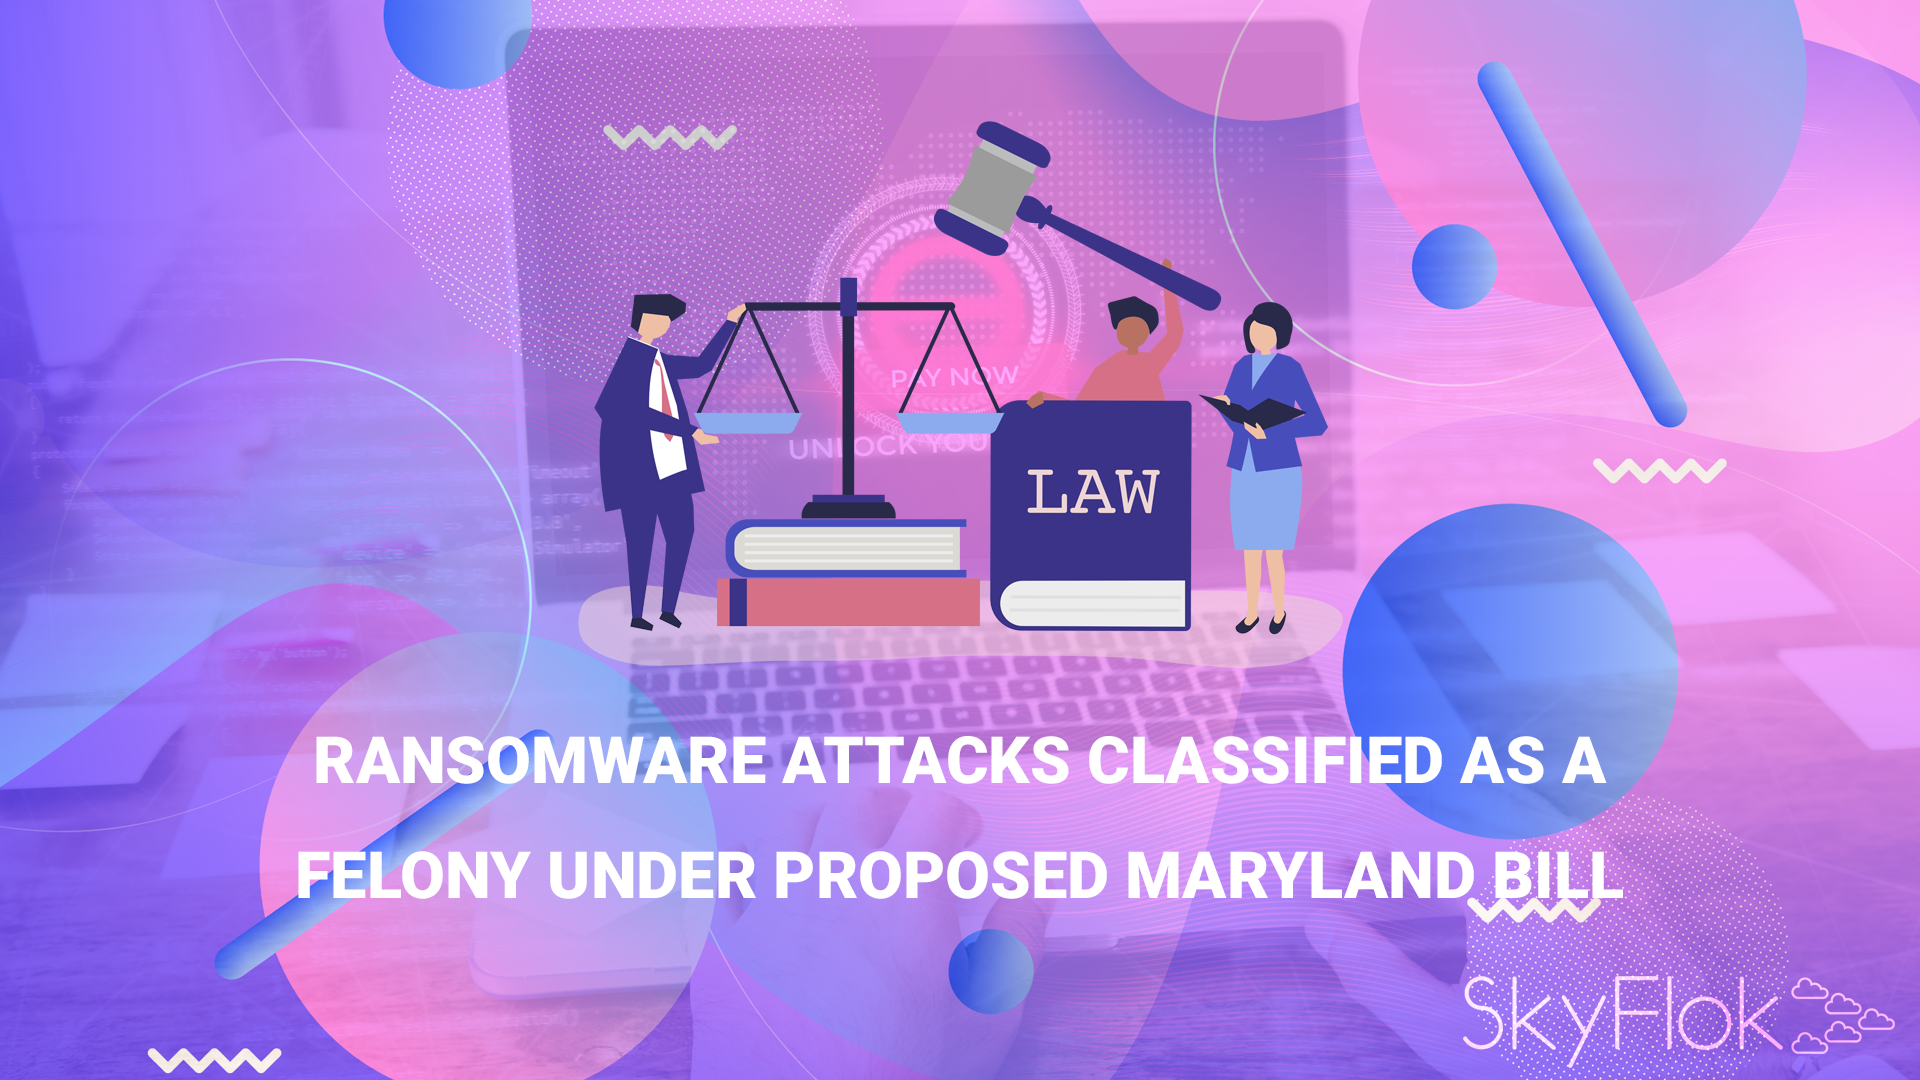 Ransomware Attacks Classified as a Felony Under Proposed Maryland Bill